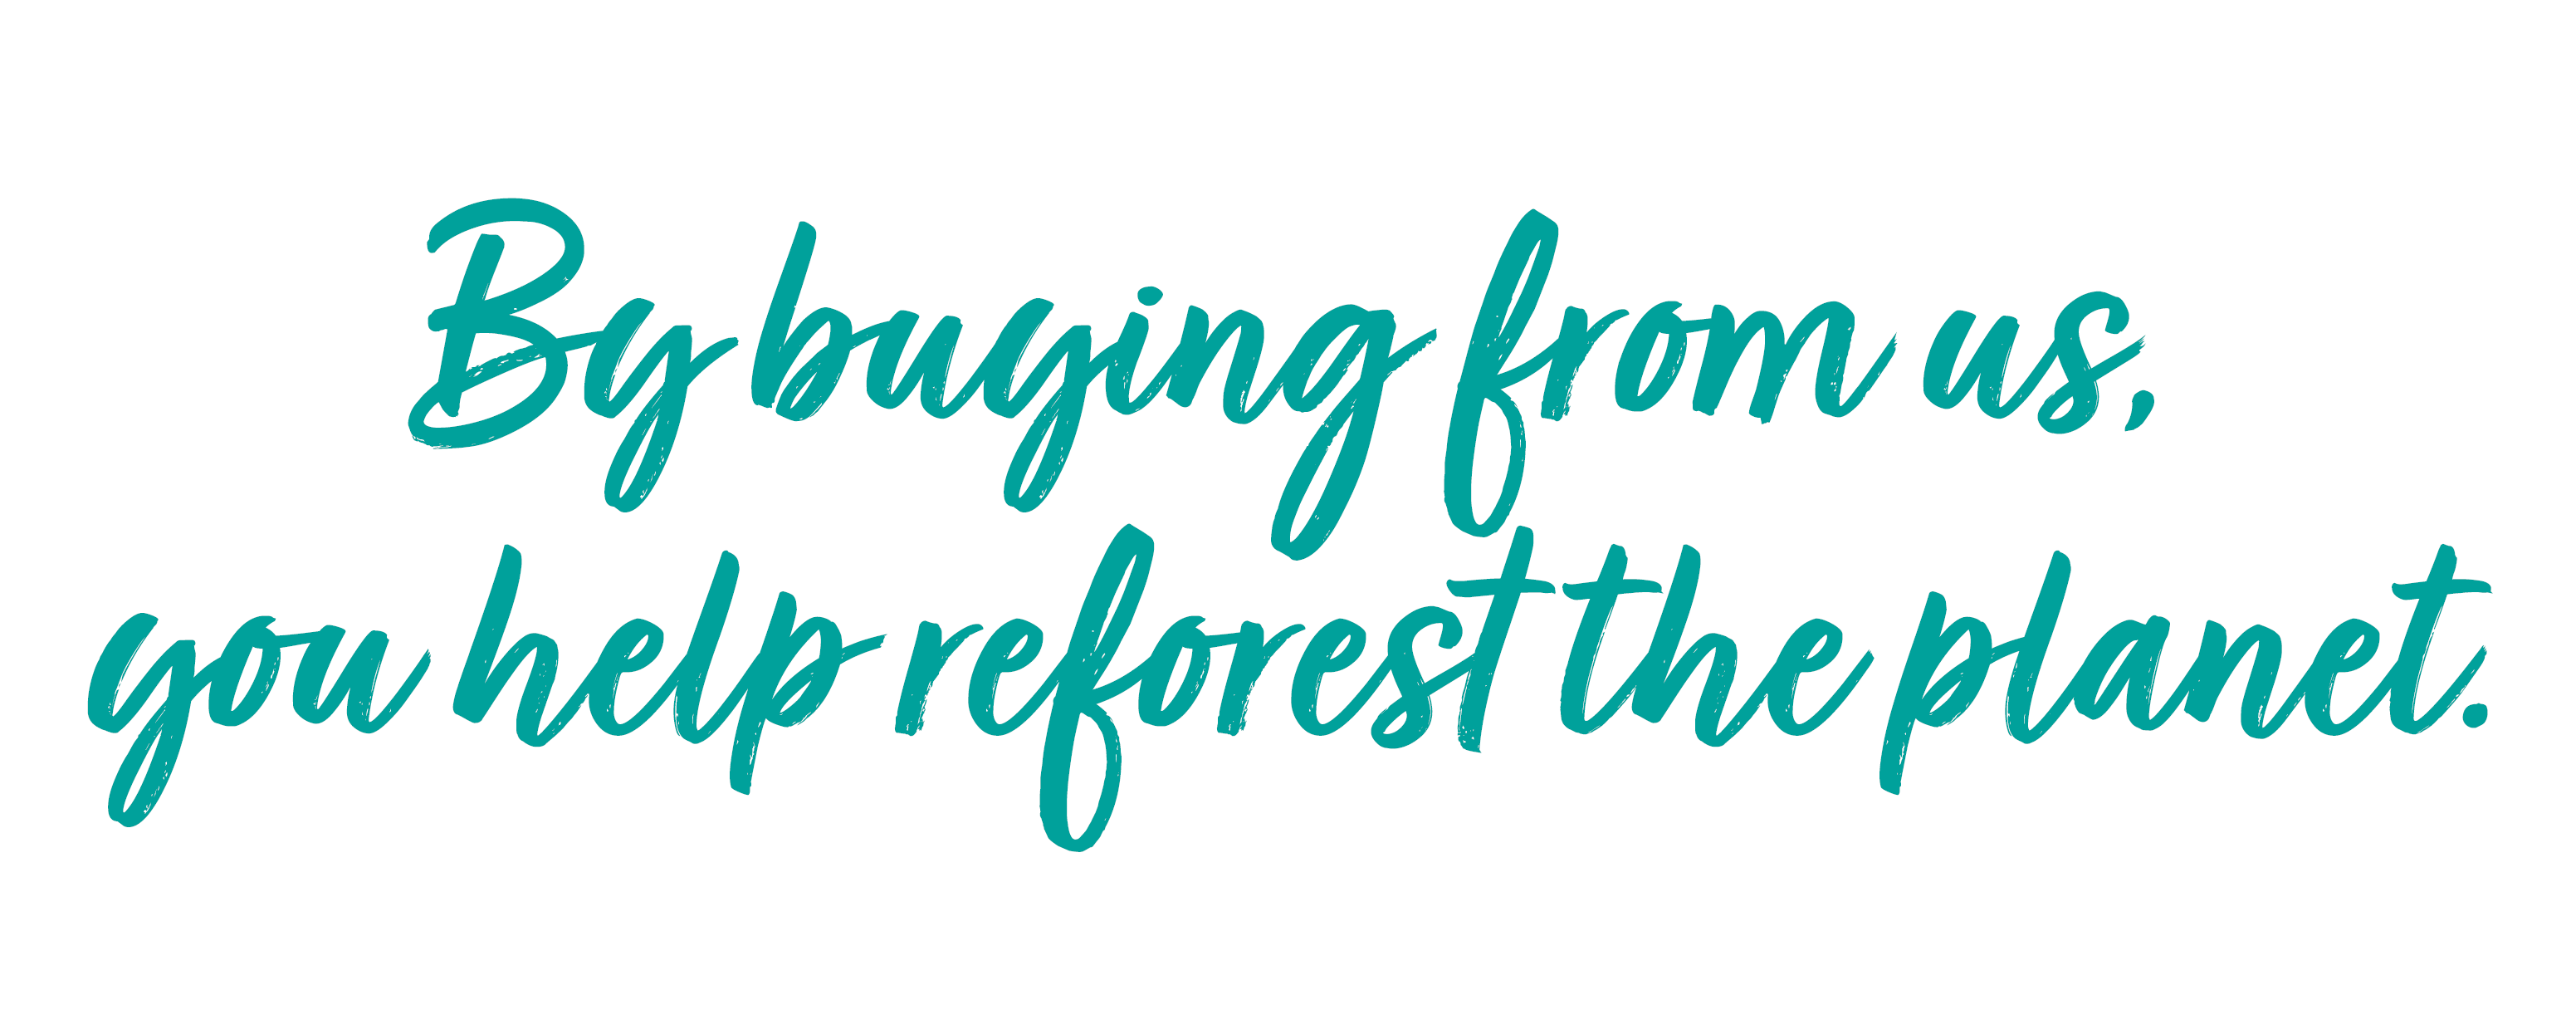 By buying from us, you help to reforest the planet